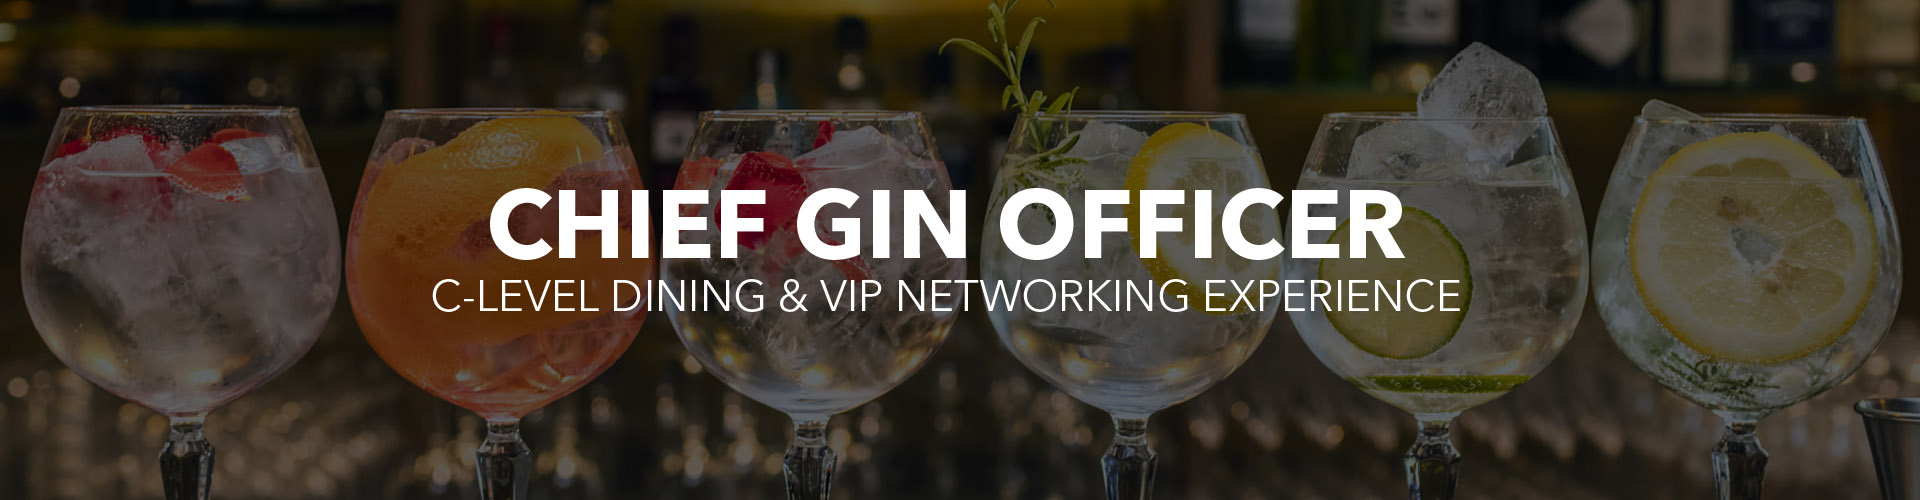 Chief Gin Officer C-level Dinner and Networking-1.jpg